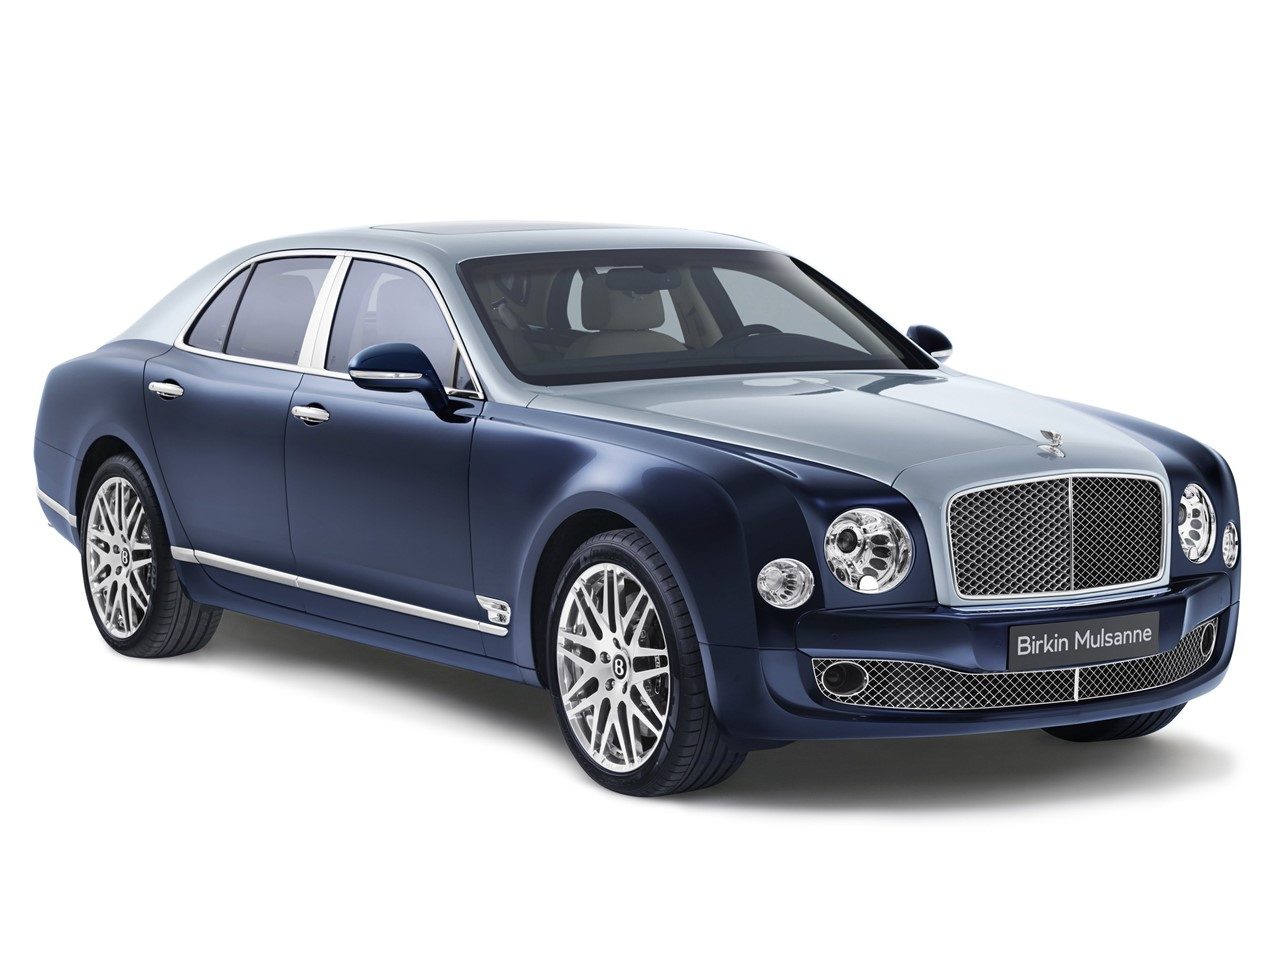 2014 bentley mulsanne birkin edition notoriousluxury. Black Bedroom Furniture Sets. Home Design Ideas